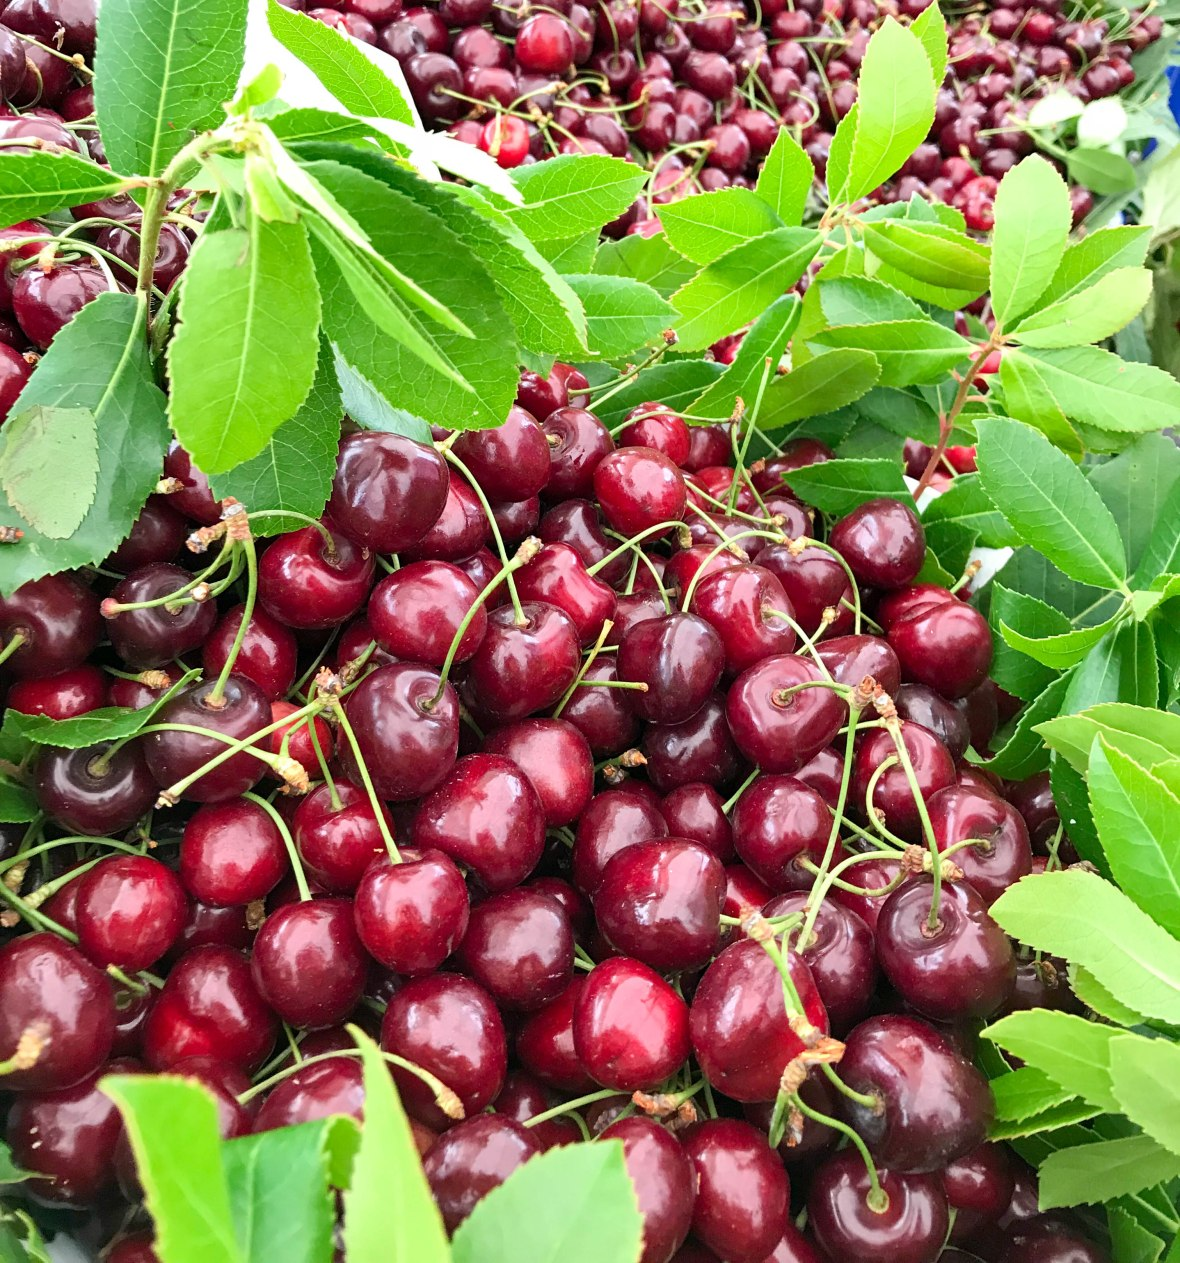 cherries, market, heybeliada island, adalar, princes islands, istanbul